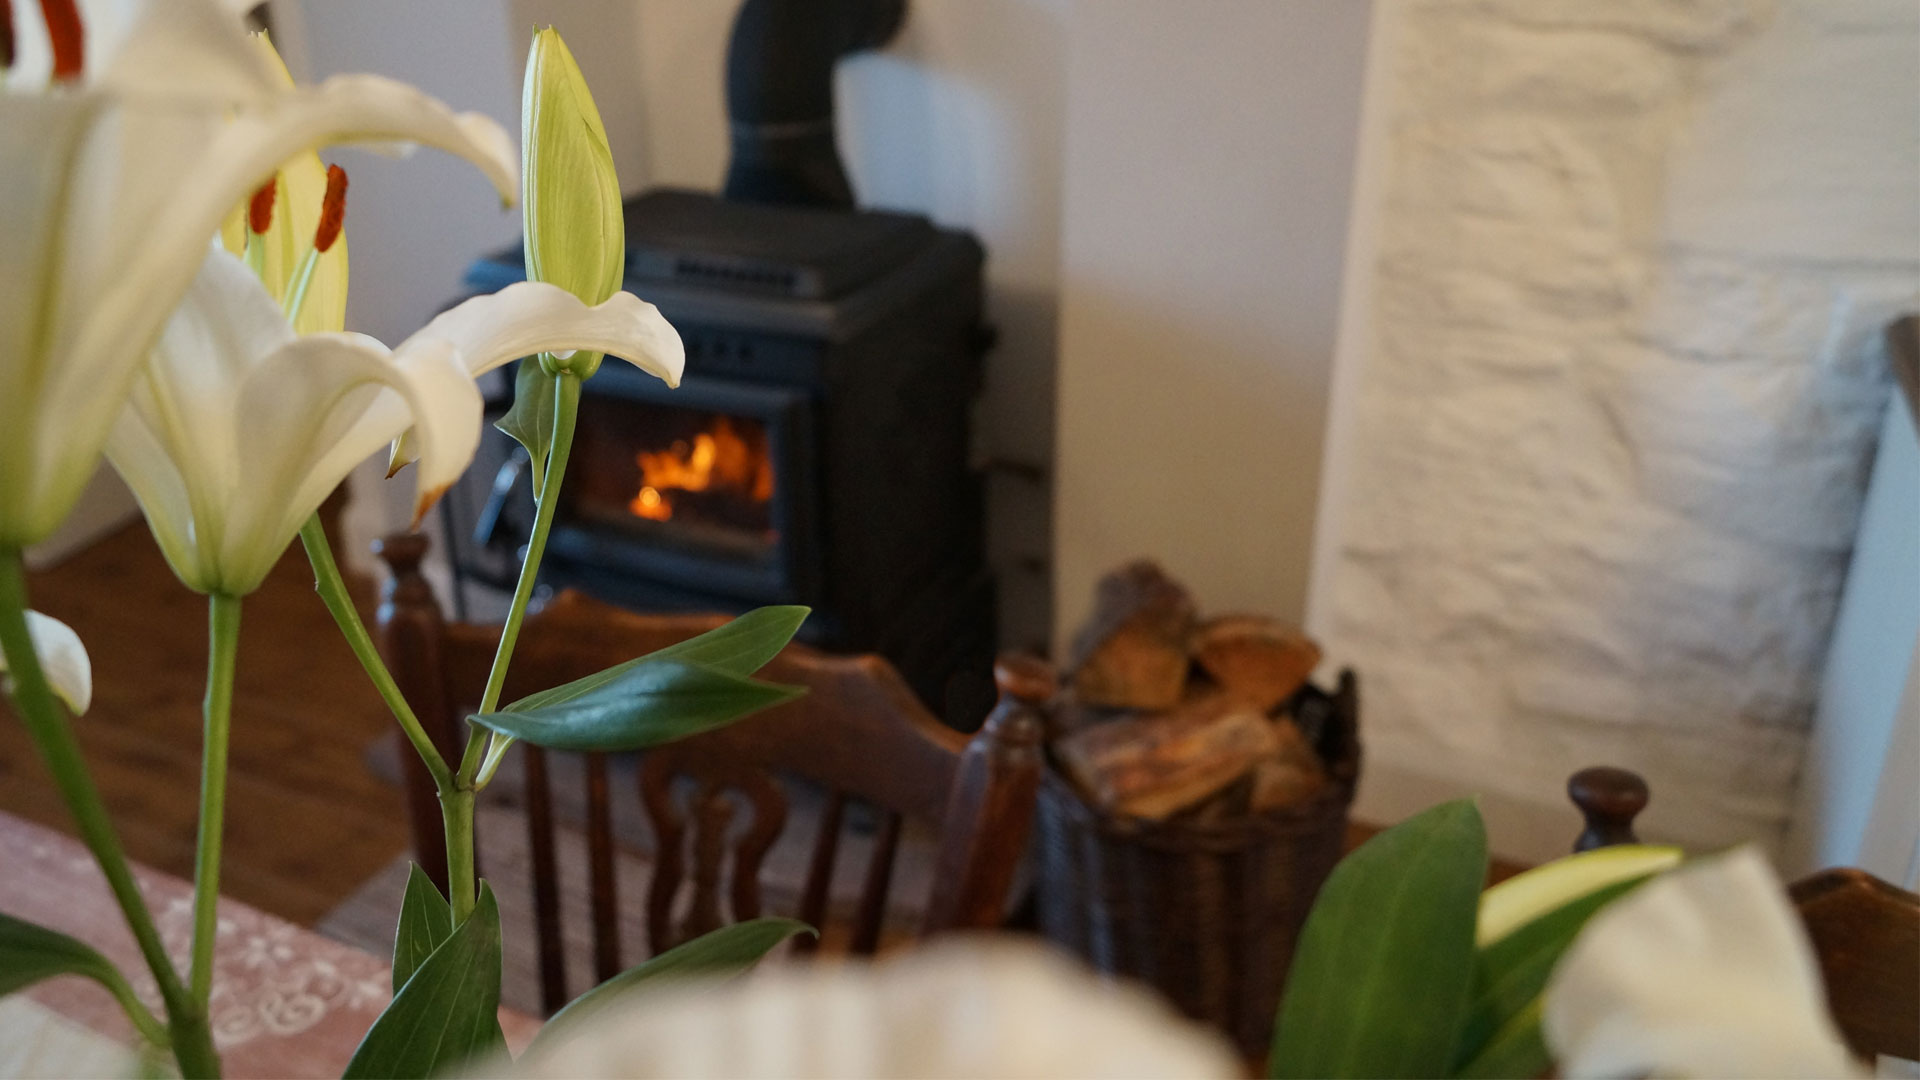 https://mulrannyhouse.ie/wp-content/uploads/2015/02/MR-fire-and-flowers.jpg